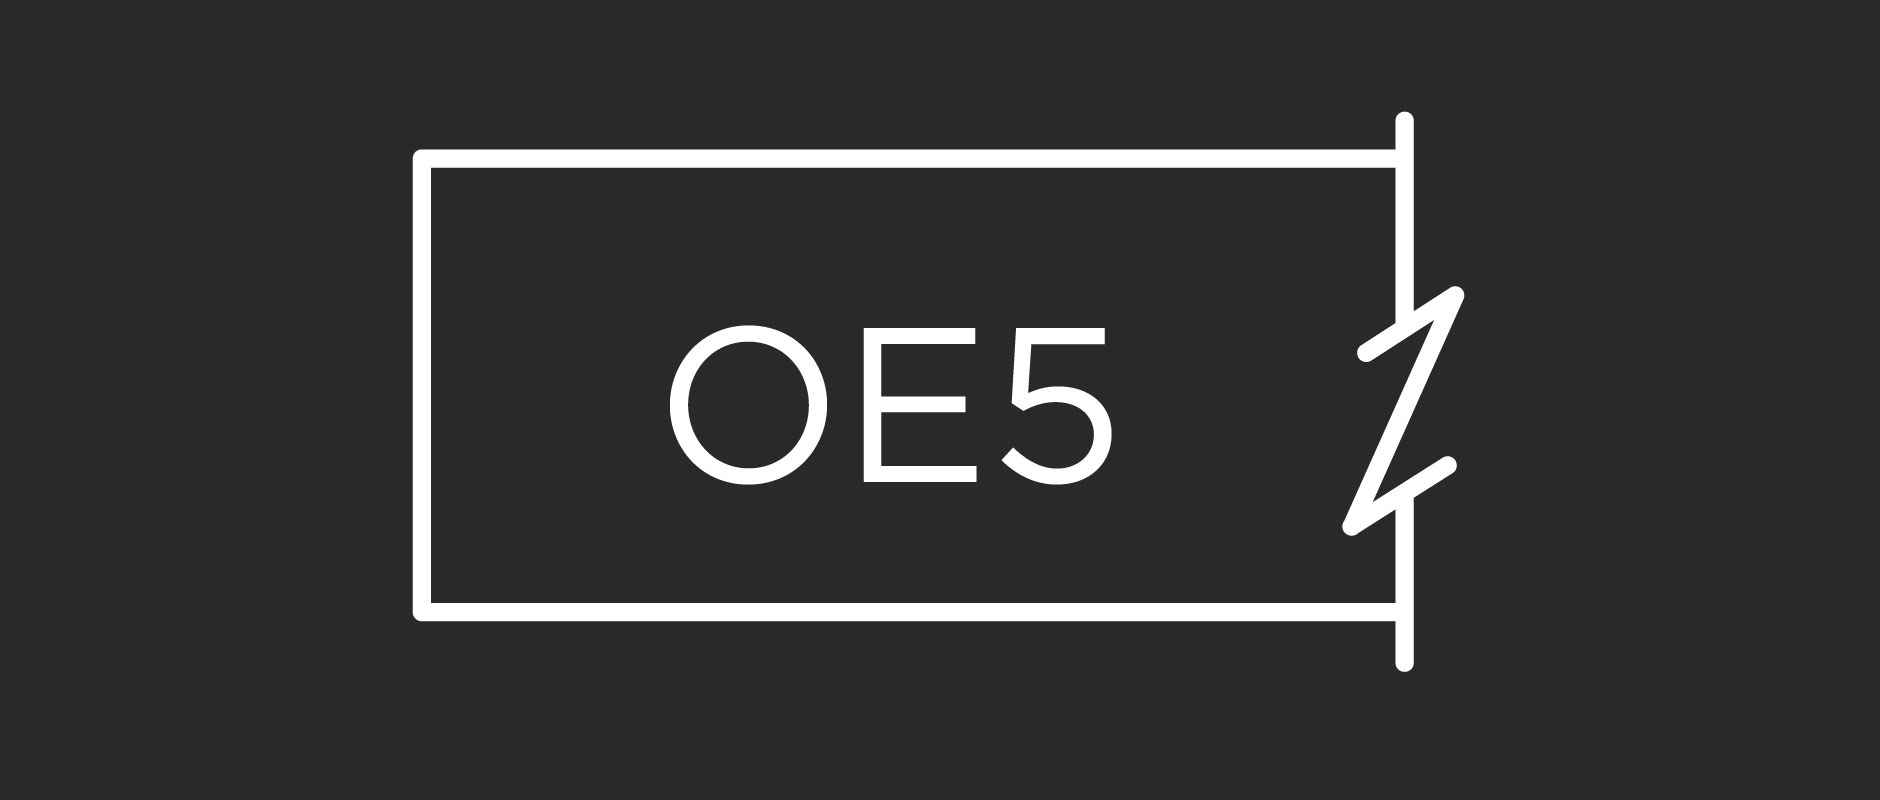 OE5 outside edge profile